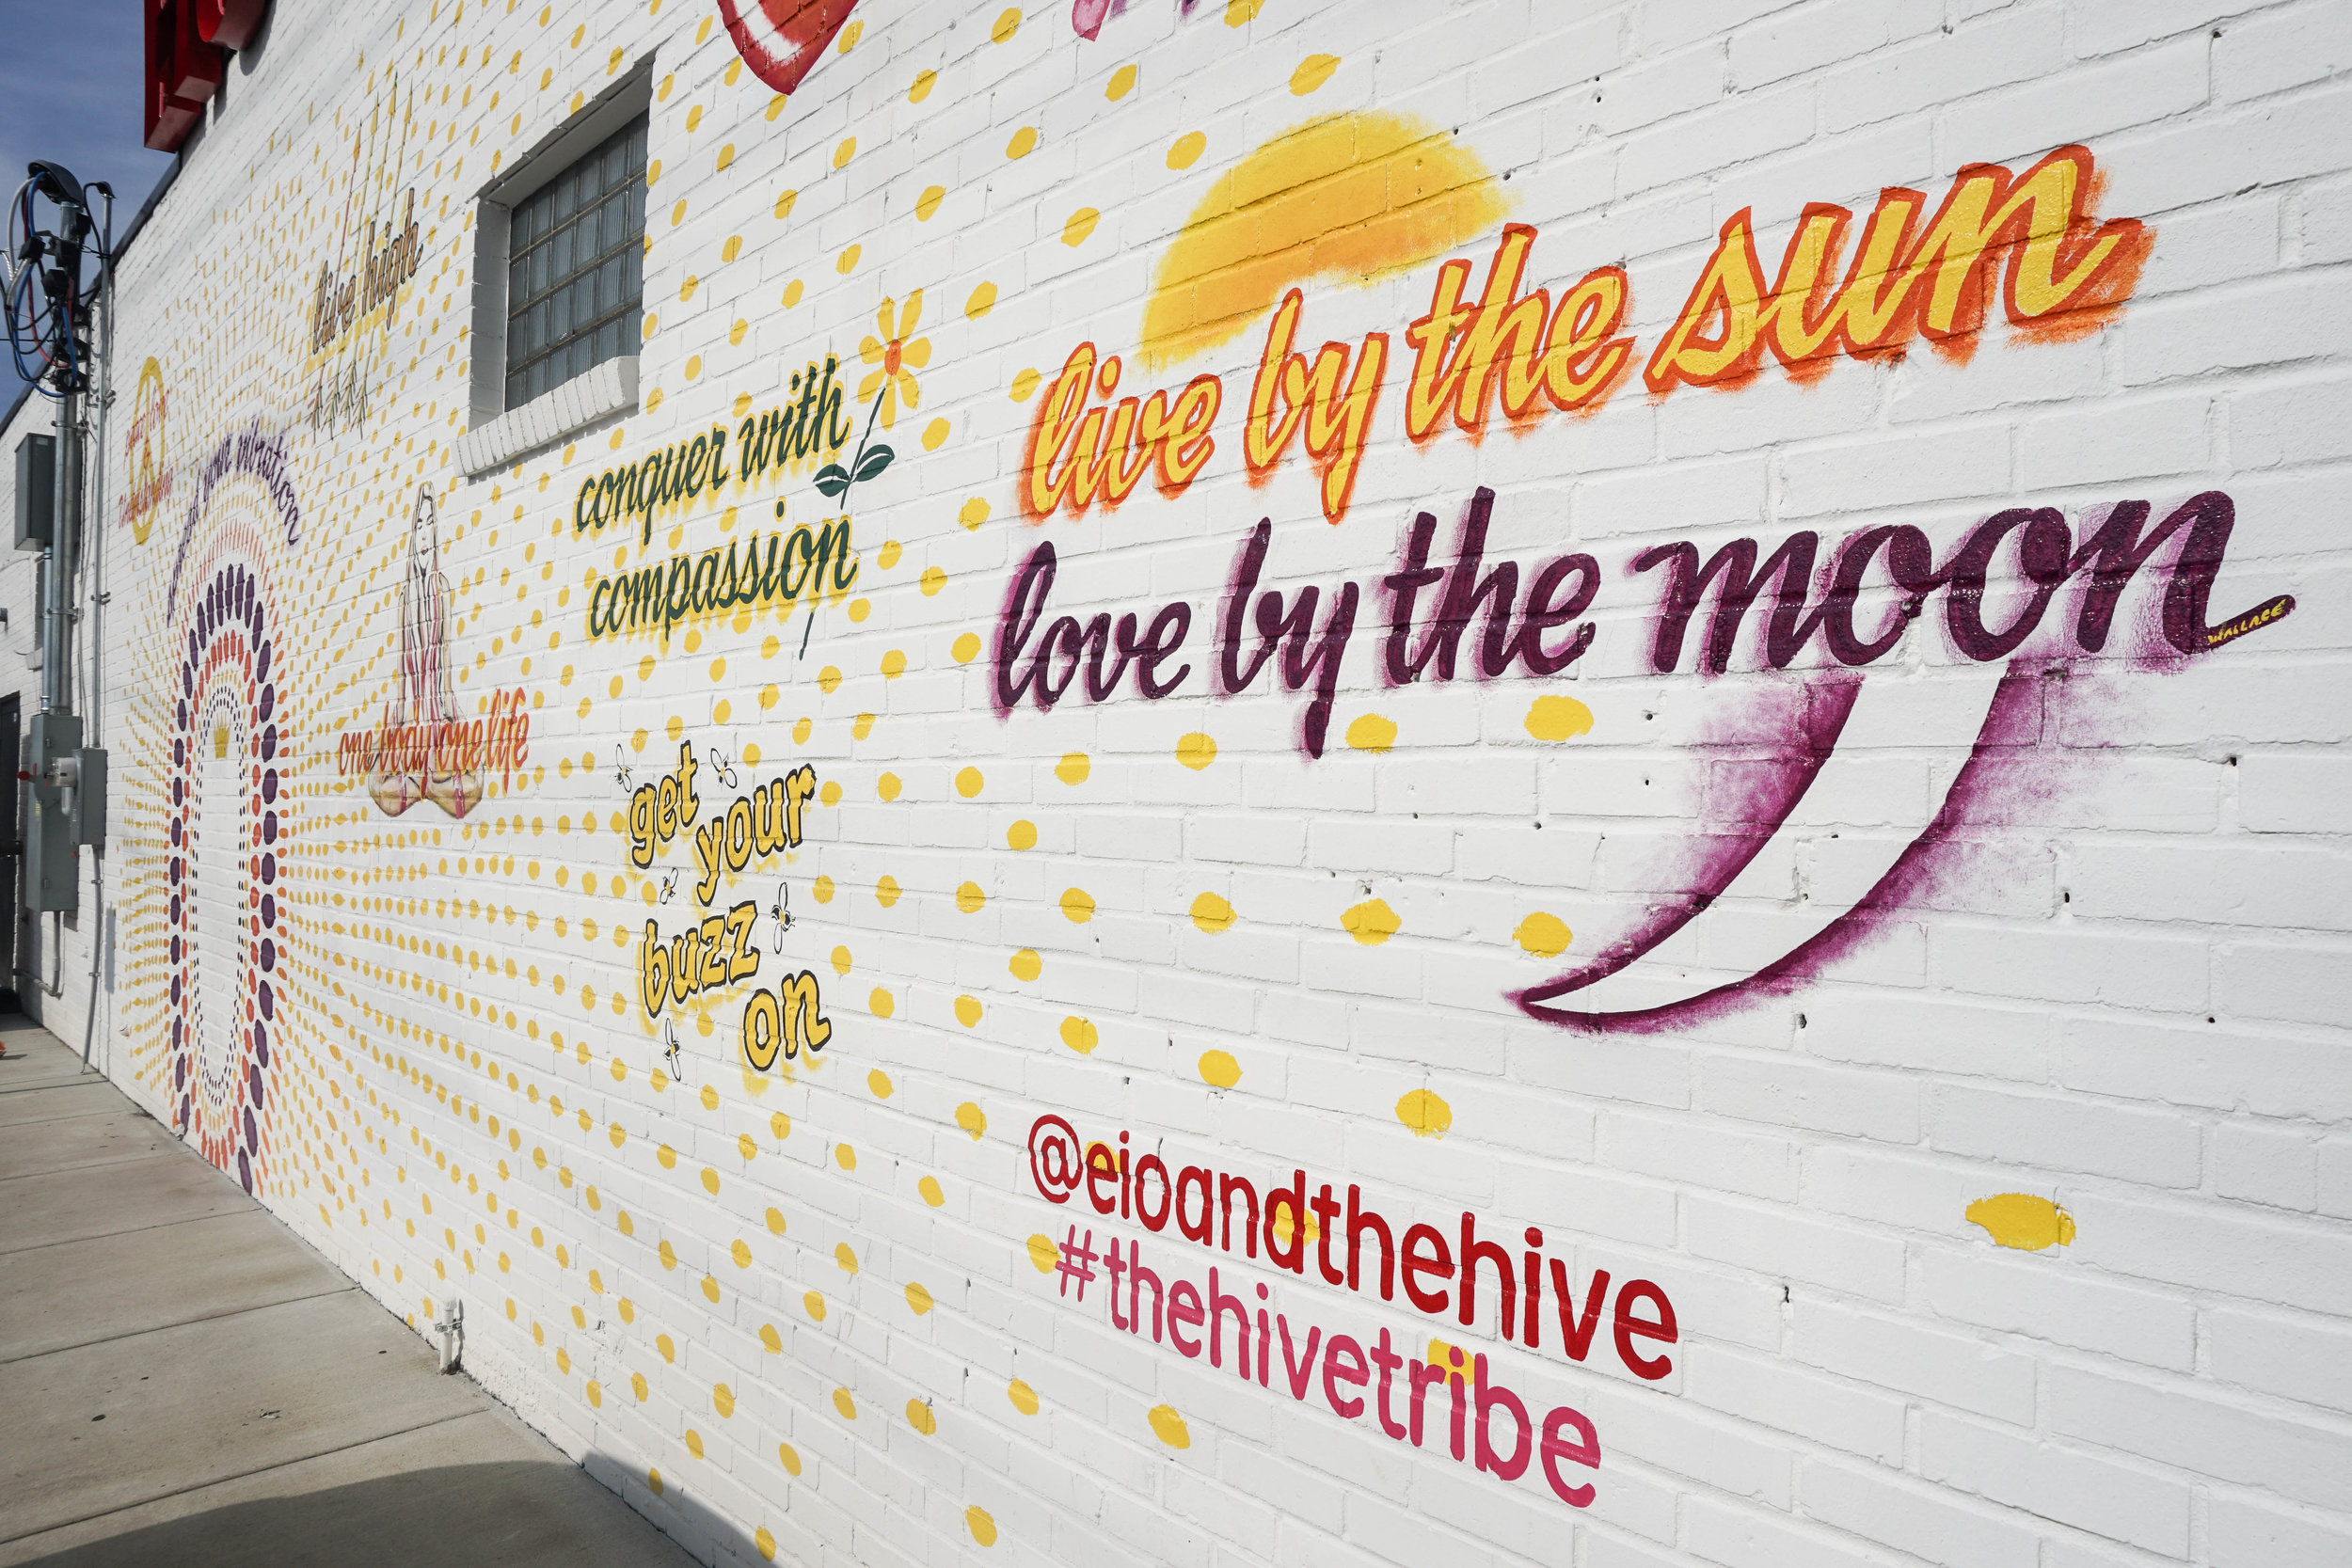 eio-and-the-hive-mural-nashville.jpg